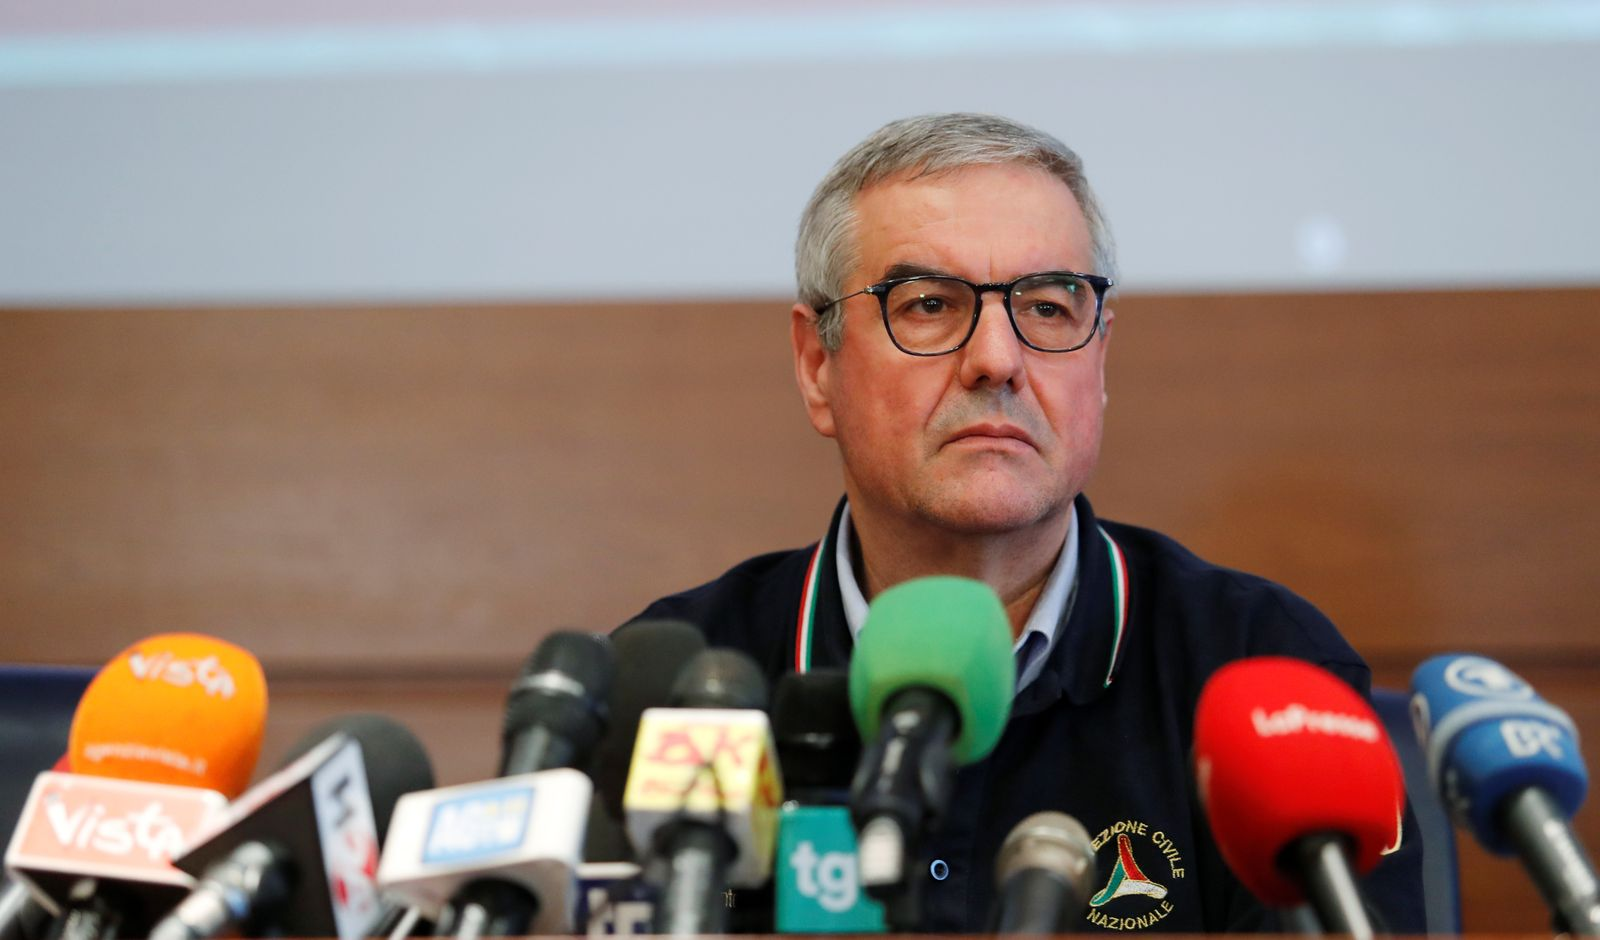 Chief of Italy's Civil Protection agency Angelo Borrelli gives an update to media on the new coronavirus outbreak, in Rome